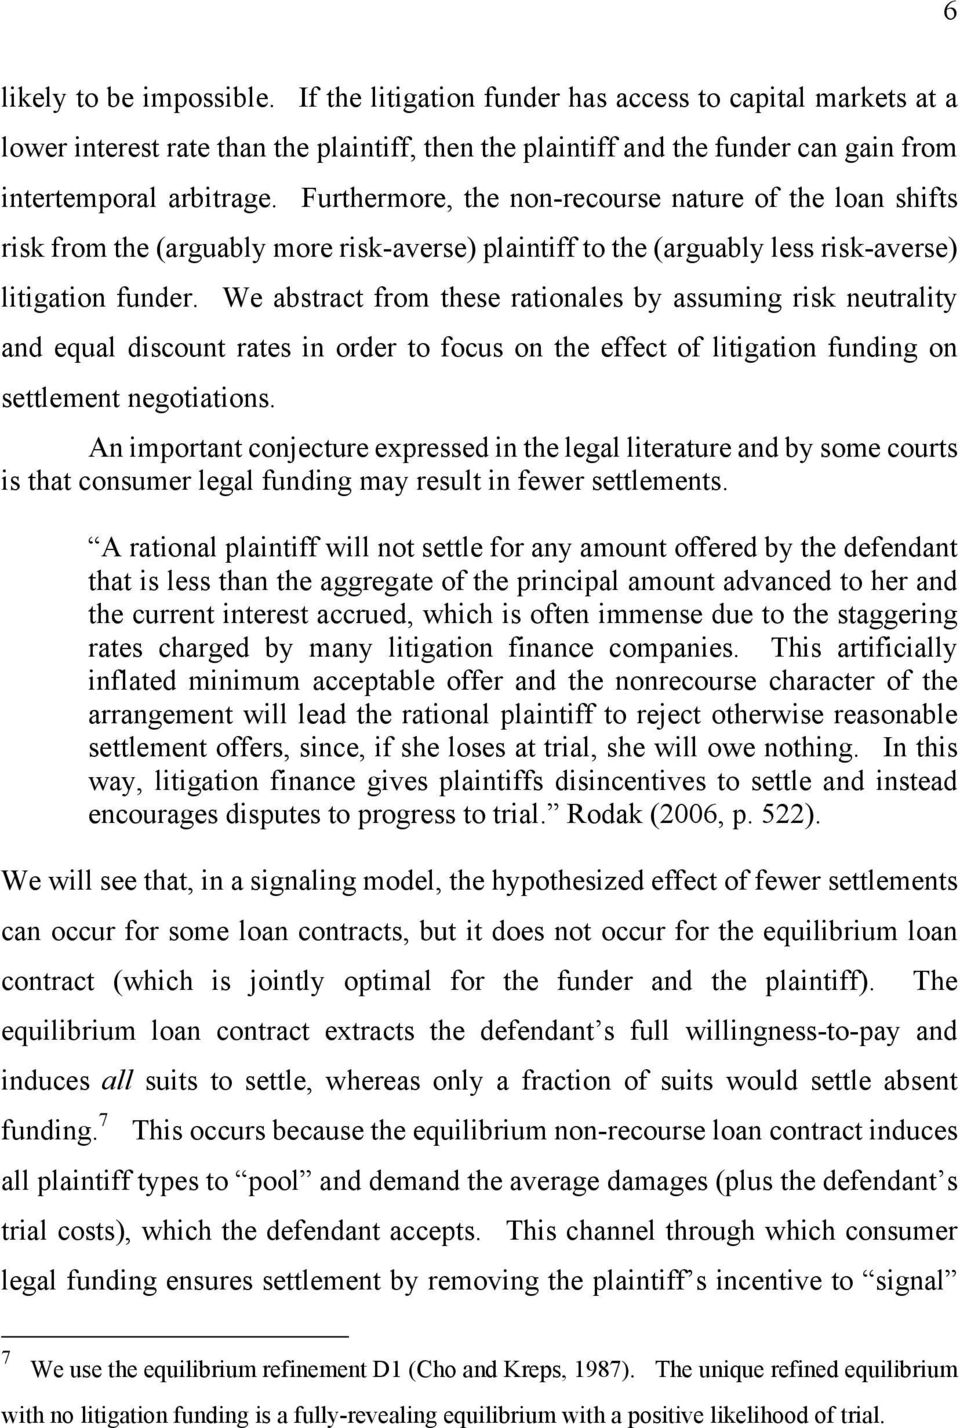 We abstract from these rationales by assuming risk neutrality and equal discount rates in order to focus on the effect of litigation funding on settlement negotiations.